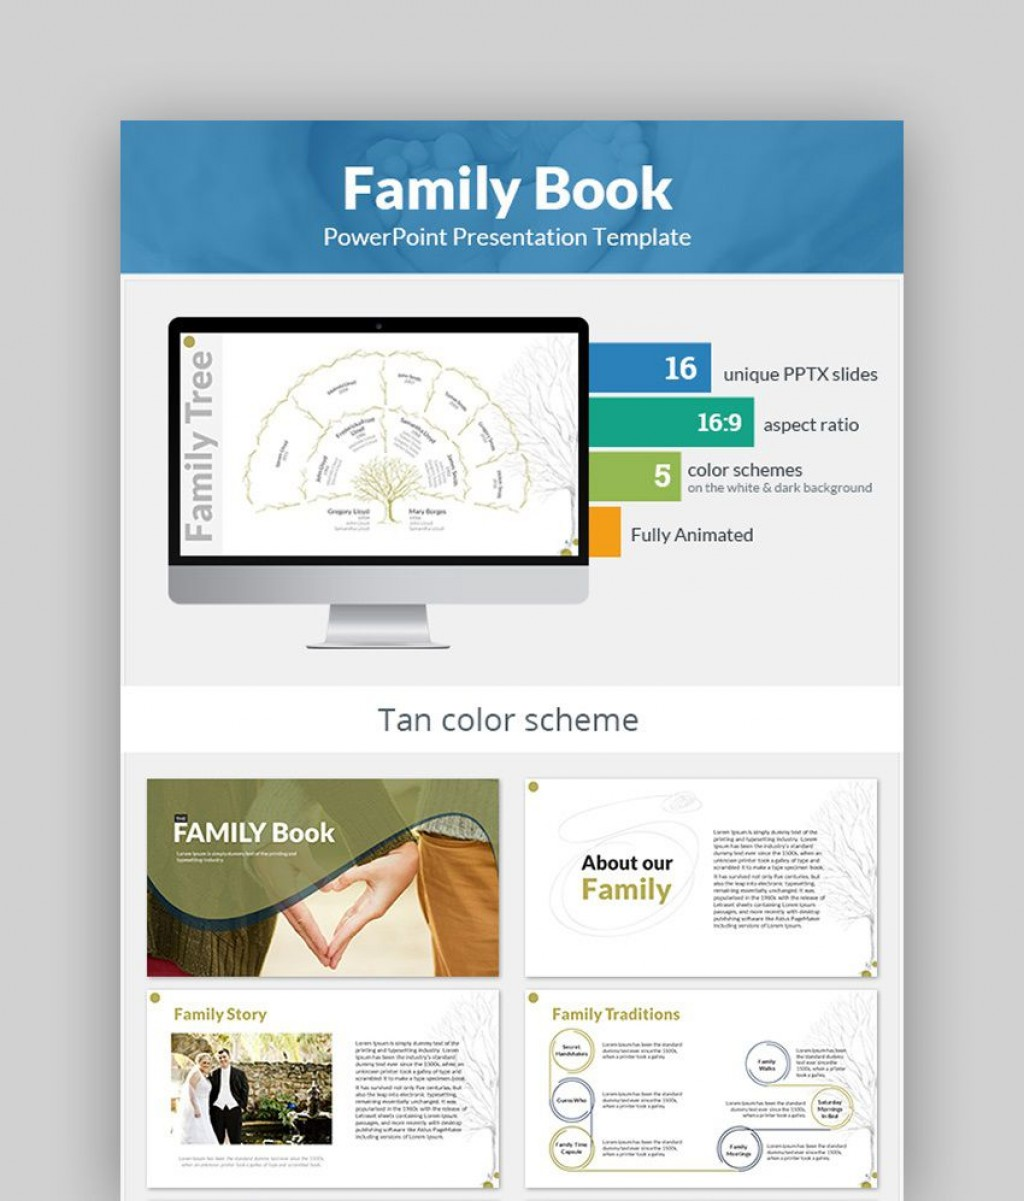 007 Incredible Family Tree Book Template Free Concept  HistoryLarge